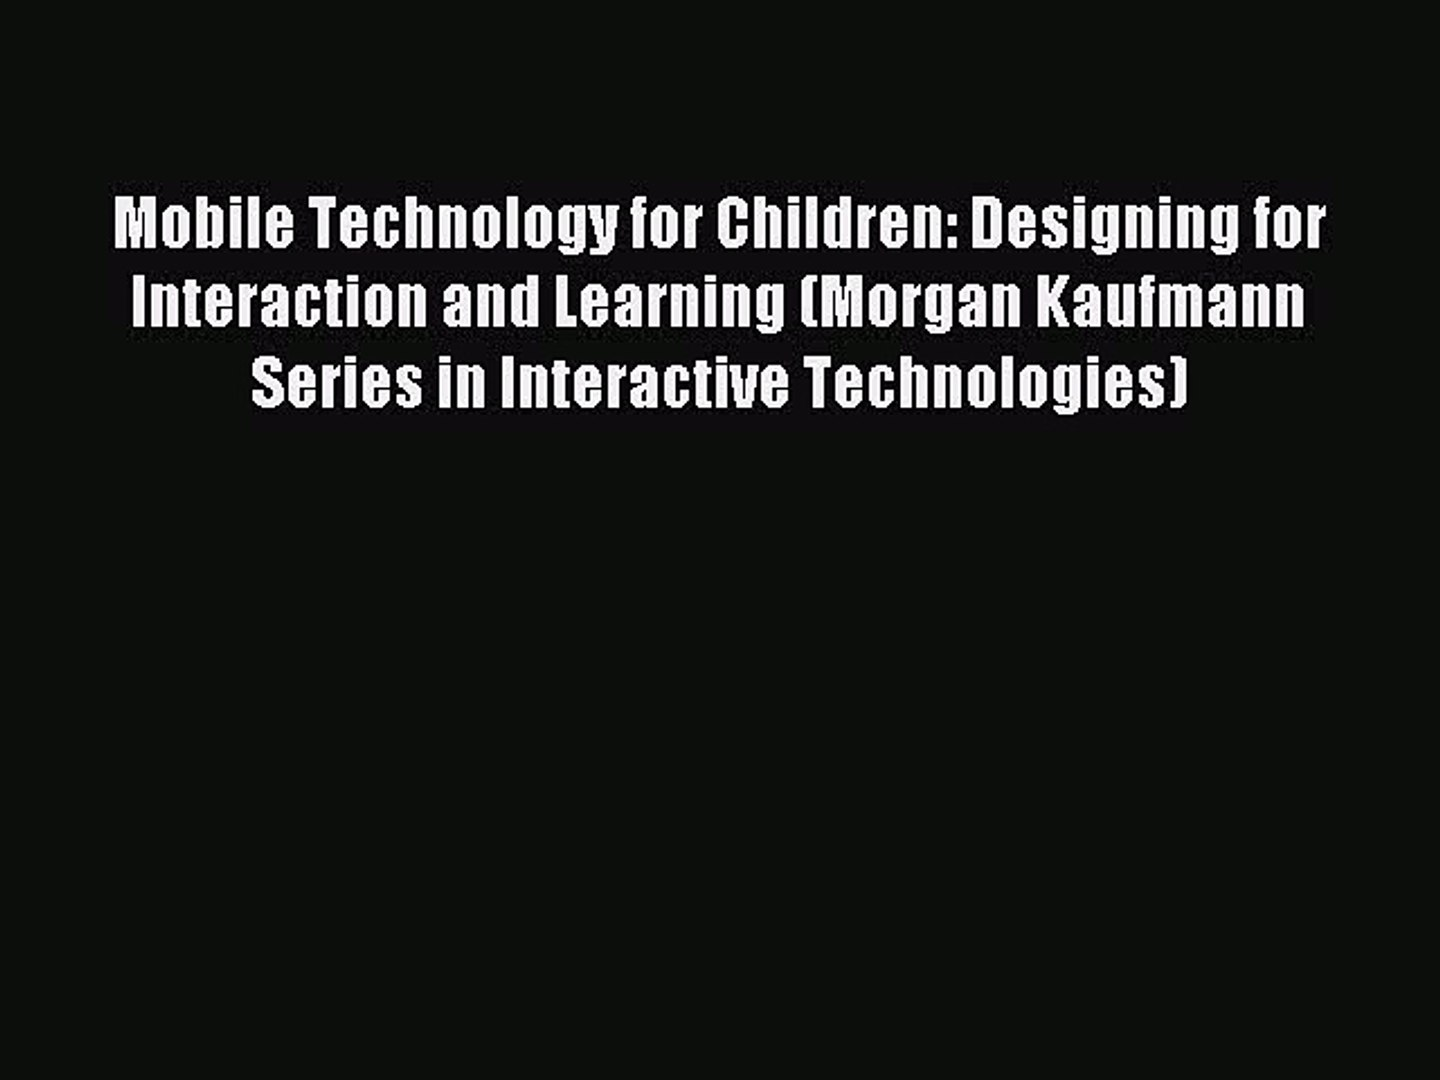 Read Mobile Technology for Children: Designing for Interaction and Learning (Morgan Kaufmann